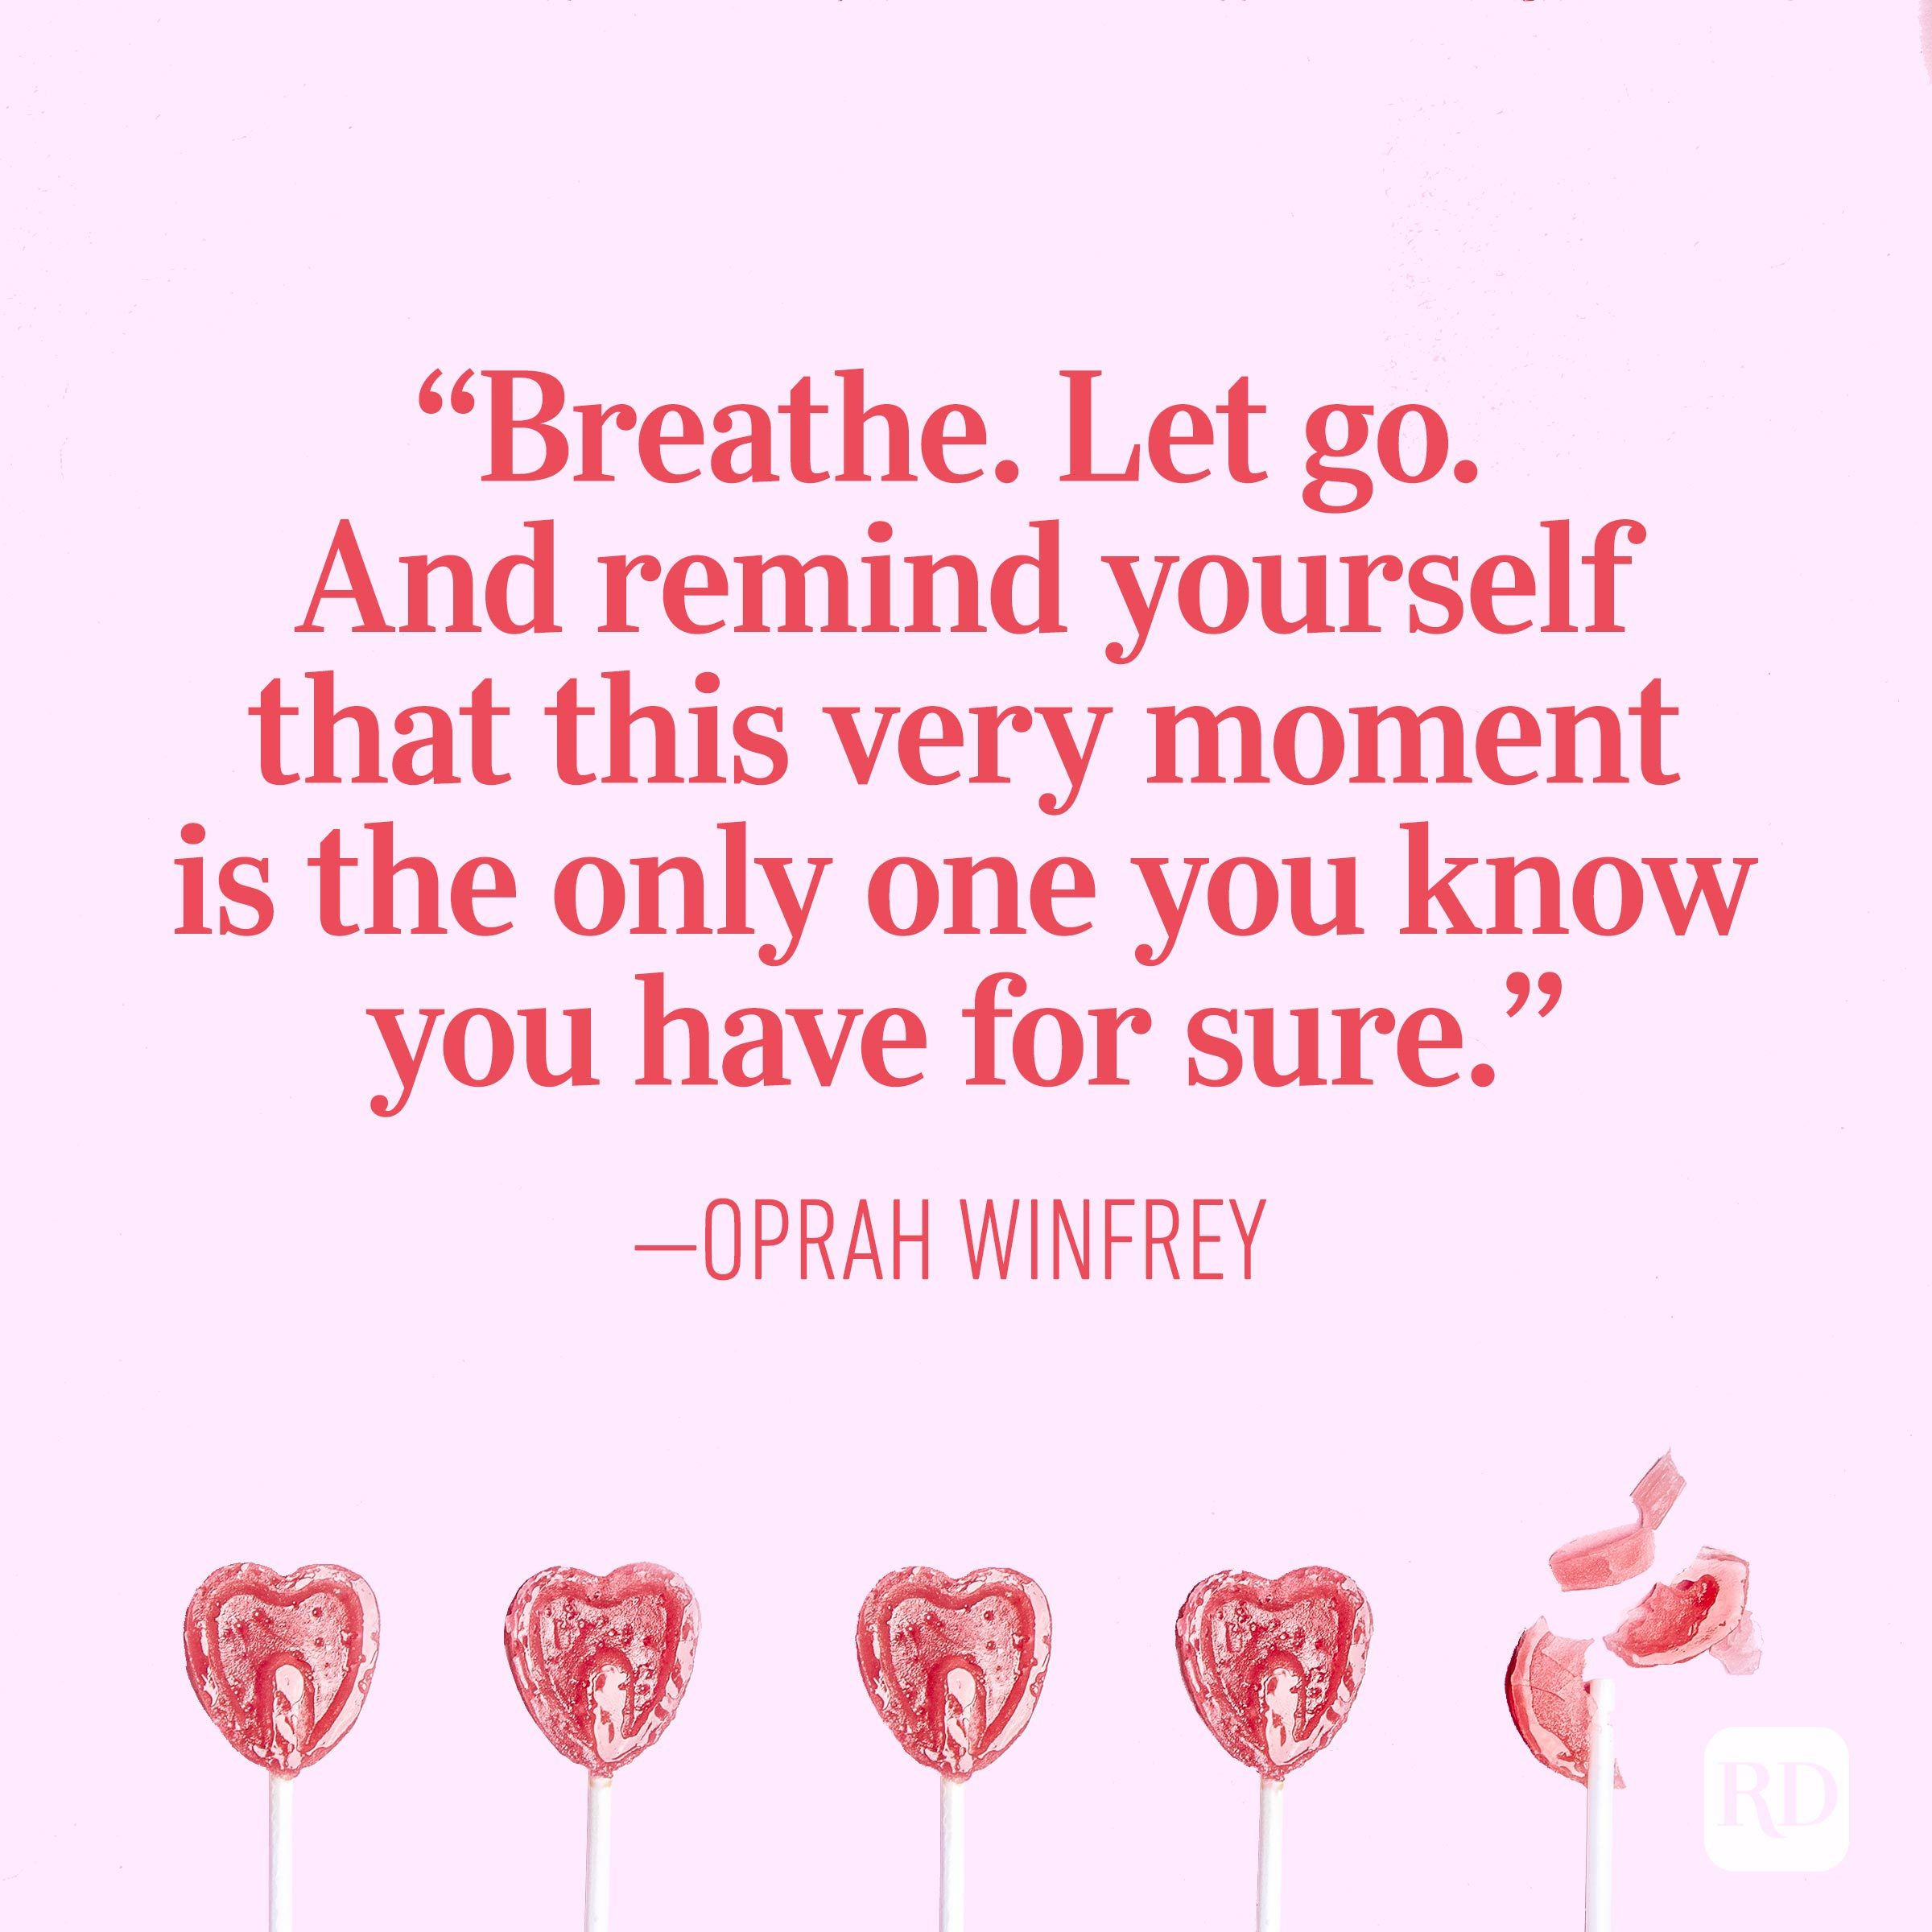 """Breathe. Let go. And remind yourself that this very moment is the only one you know you have for sure."" — Oprah Winfrey"